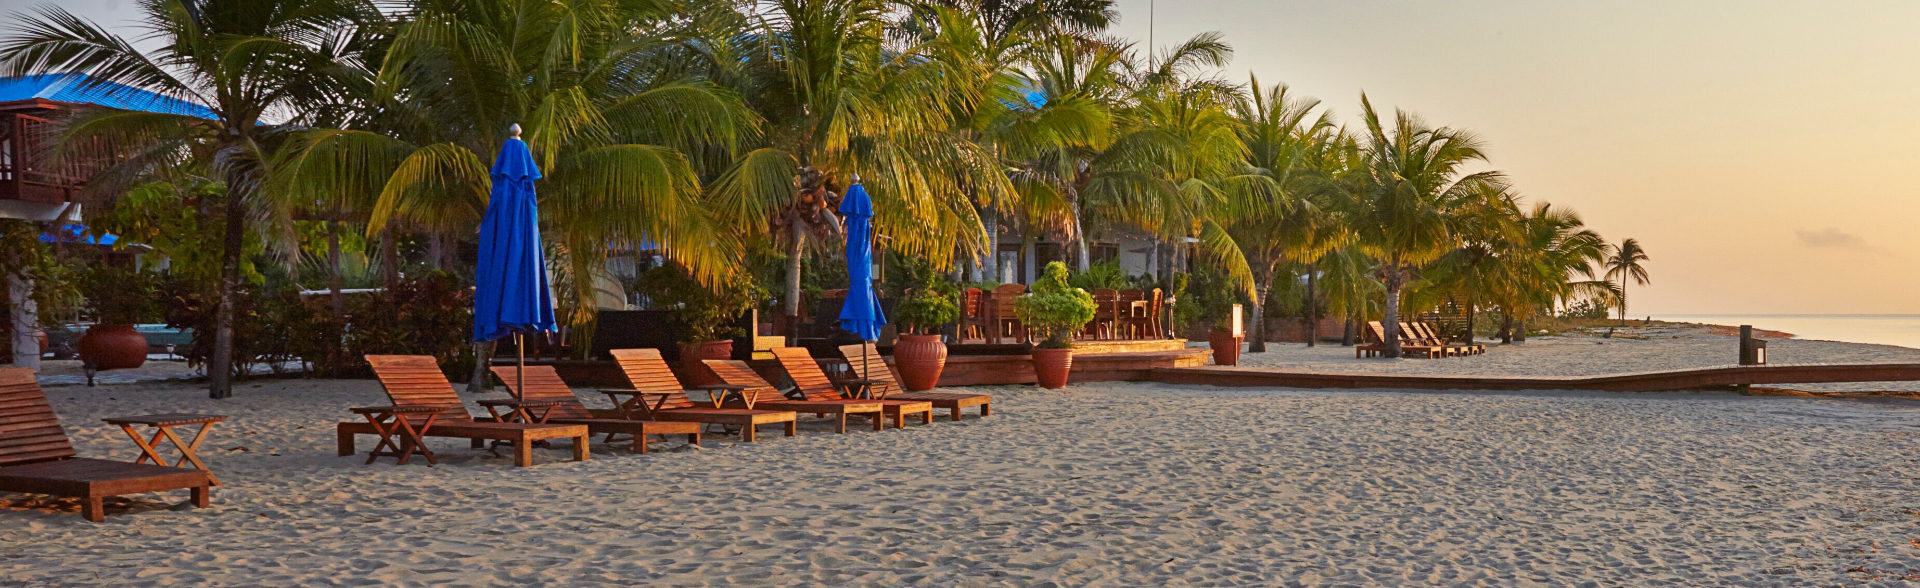 Top Belize Resort in Placencia Belize